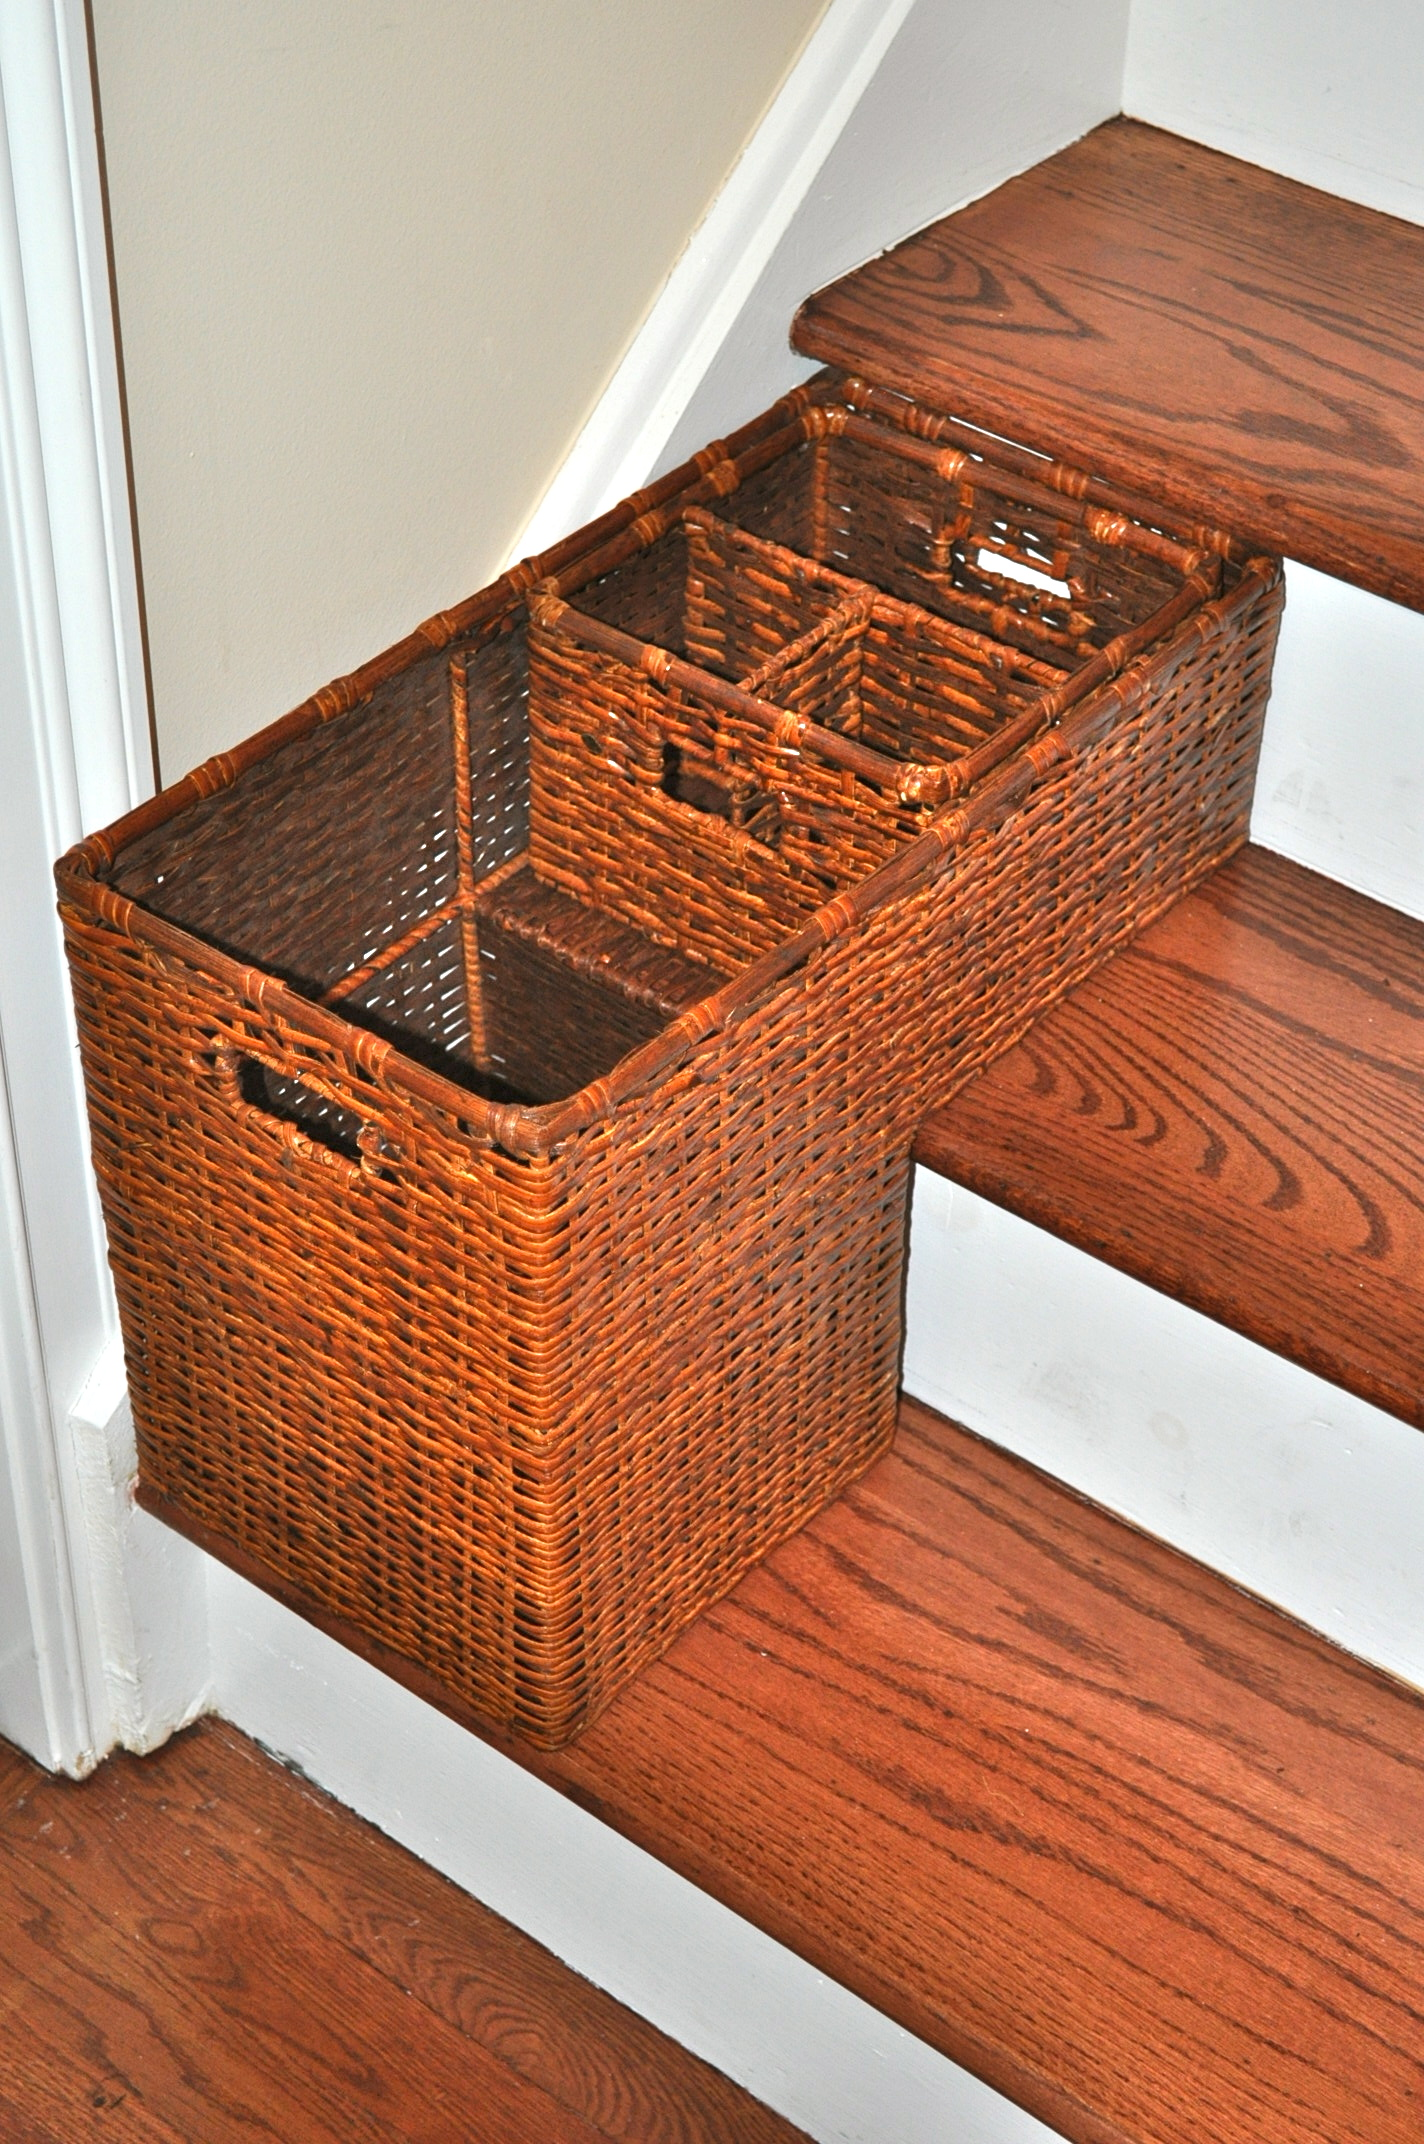 Charmant Classic Tone Basket Design For Stairs Made Of Rattan Material With Storage  Partition On Wooden Steps